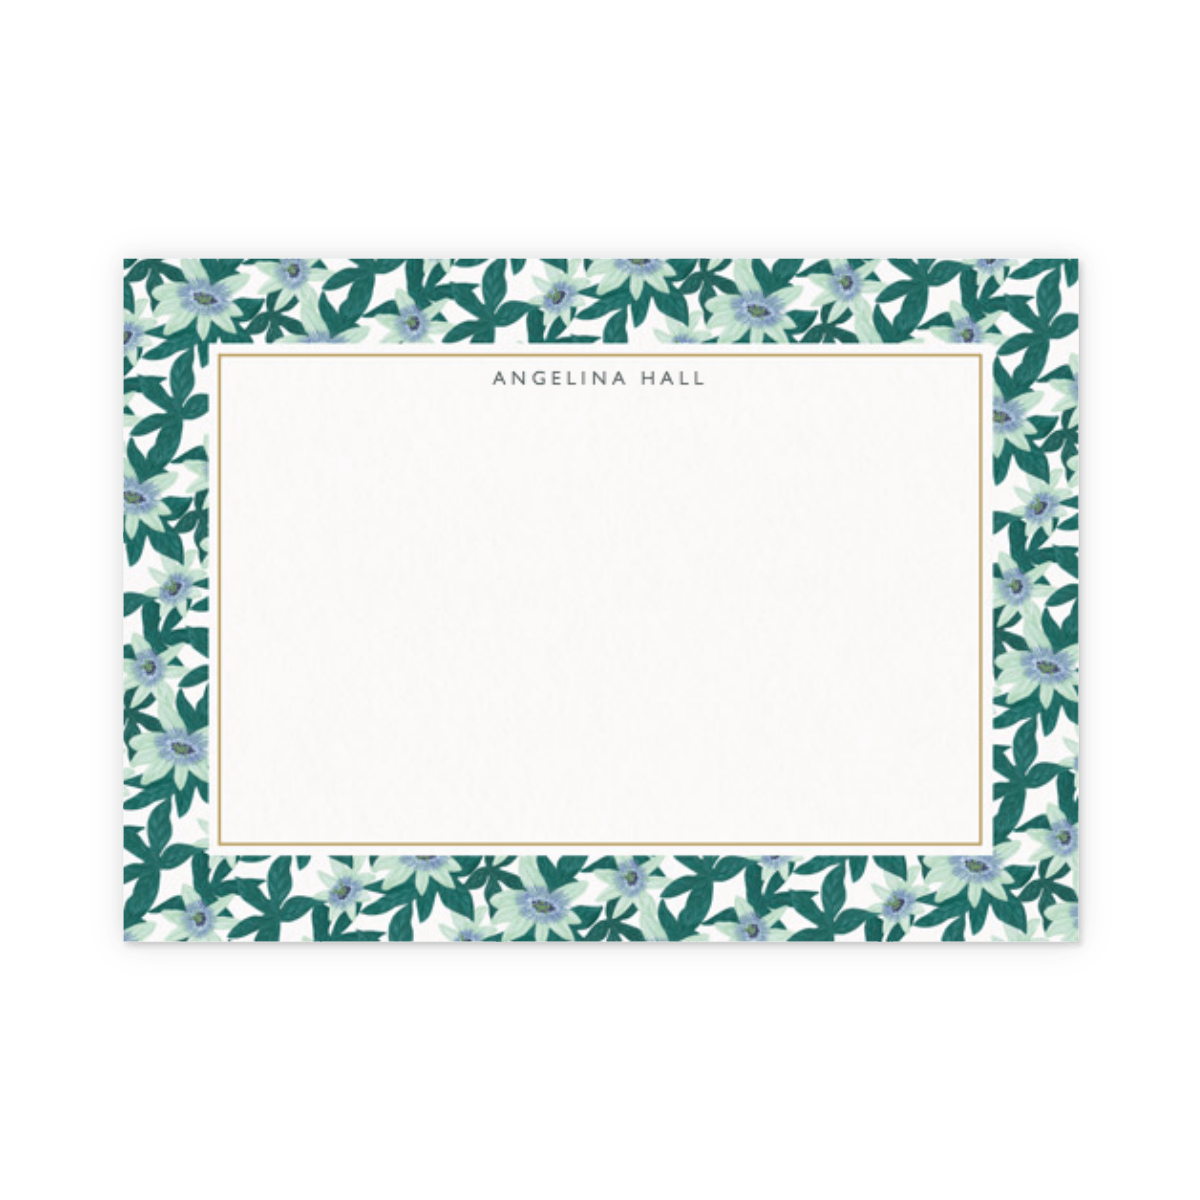 Https%3a%2f%2fwww.papier.com%2fproduct image%2f20615%2f10%2fpassion flower 5271 front 1490091327.png?ixlib=rb 1.1